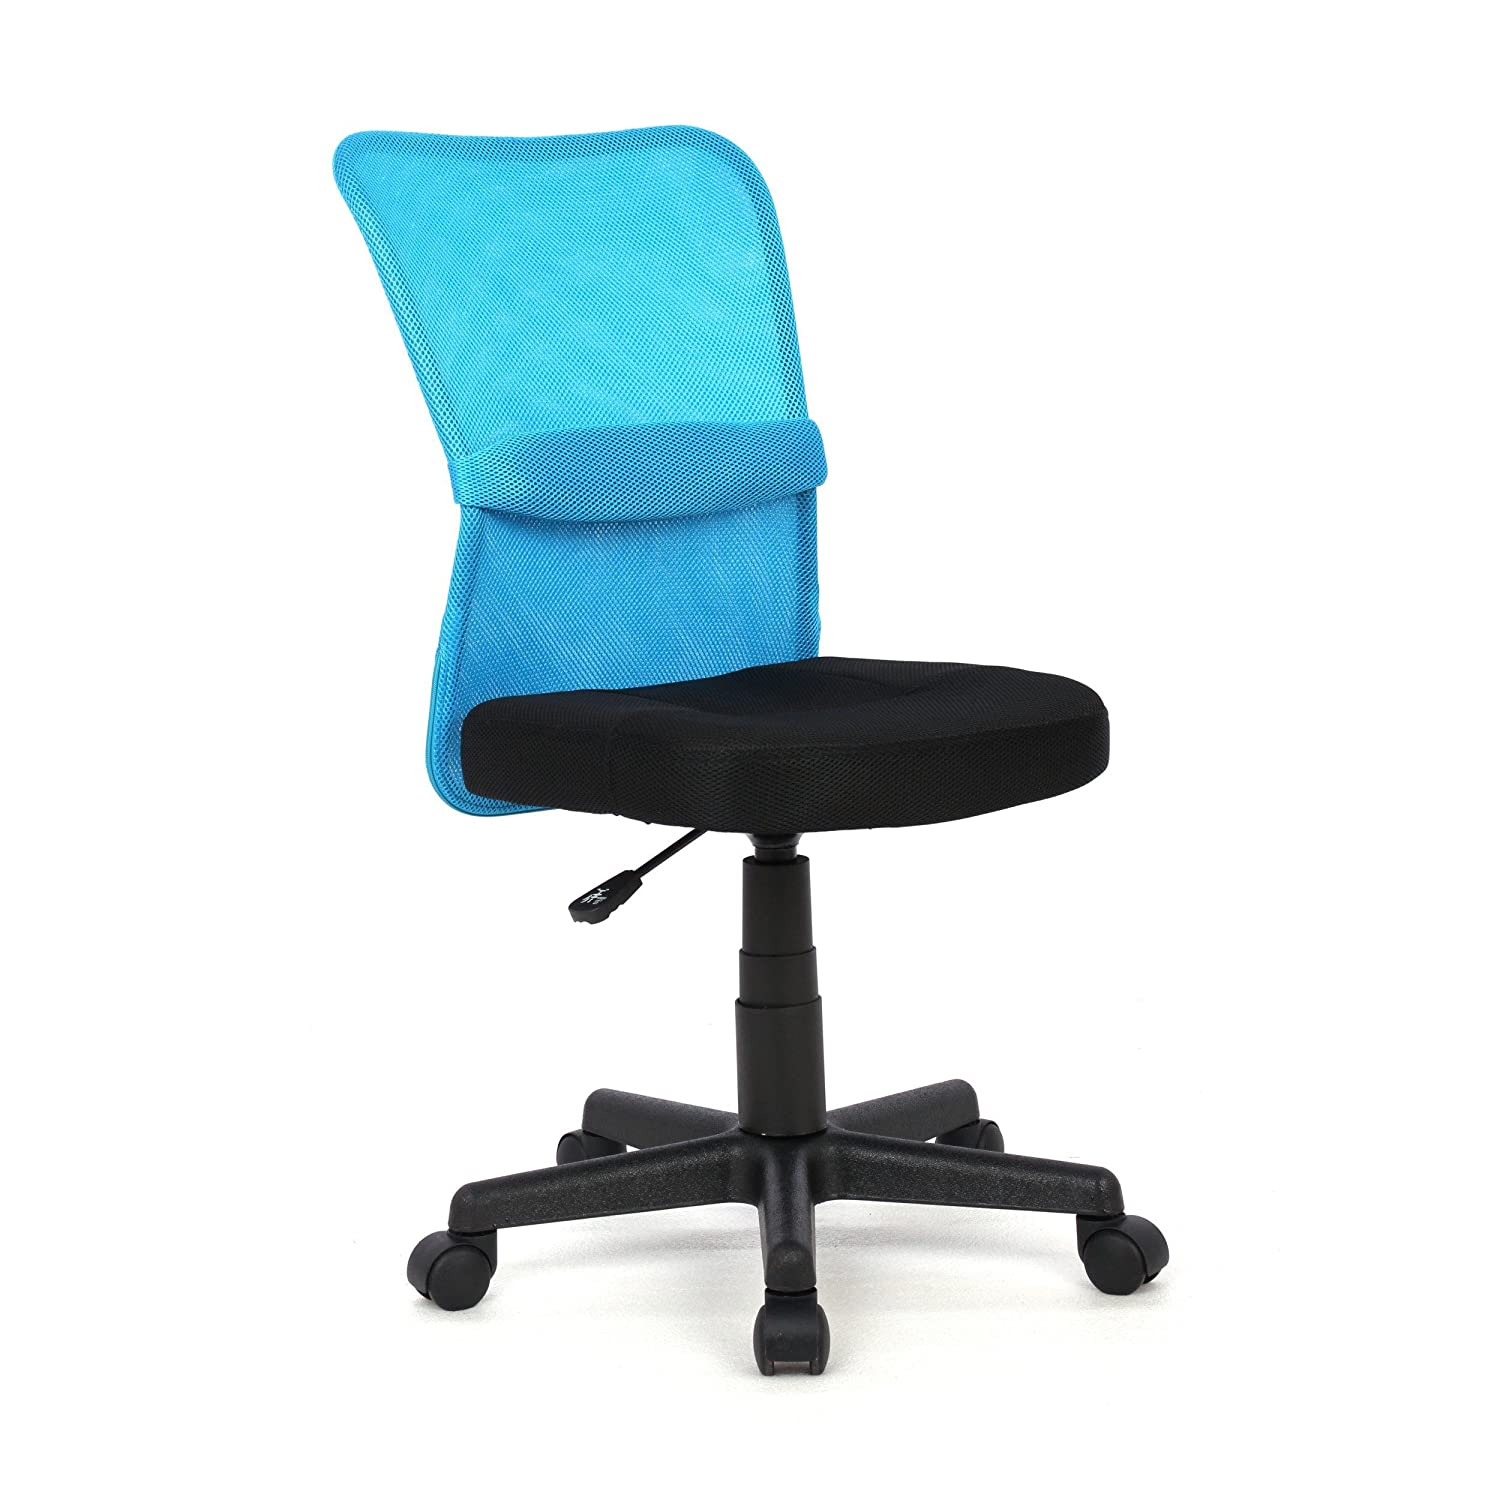 Moustache Fabric 360 Swivel Desk Computer Chair Adjustable with Wheels, Mid-Back & Padded Cushioned Seat, Armless (Blue)